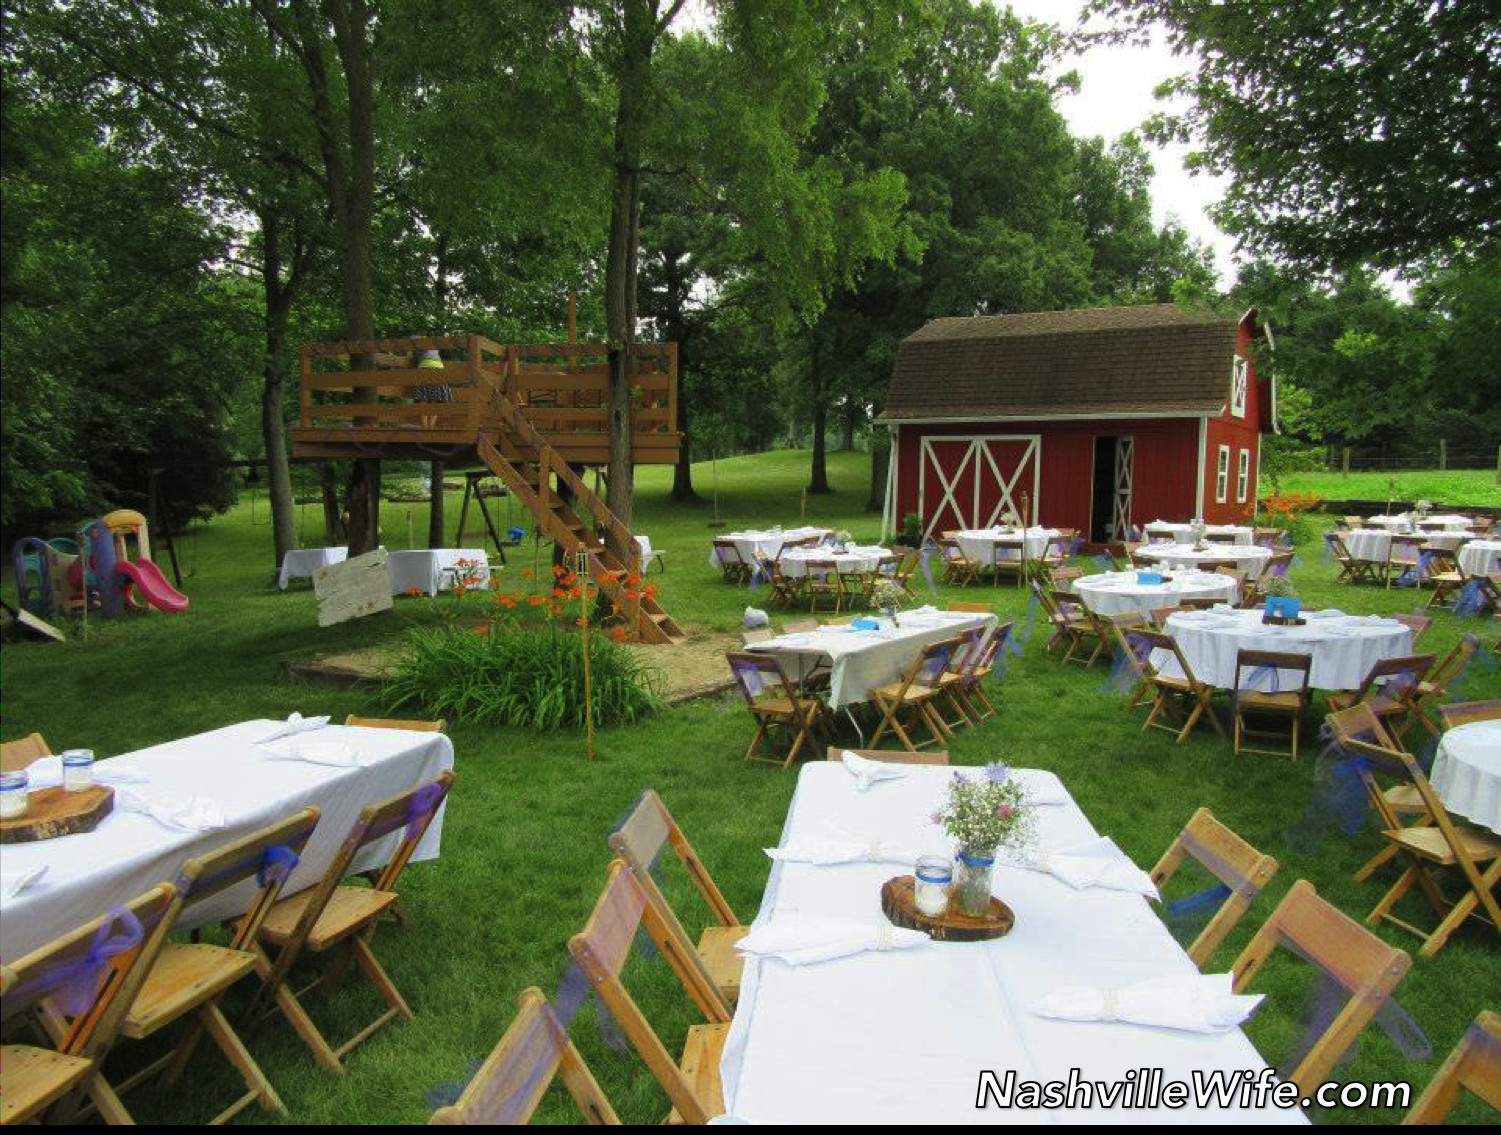 Best ideas about DIY Wedding Catering . Save or Pin DIY Wedding Reception Nashville Wife Now.